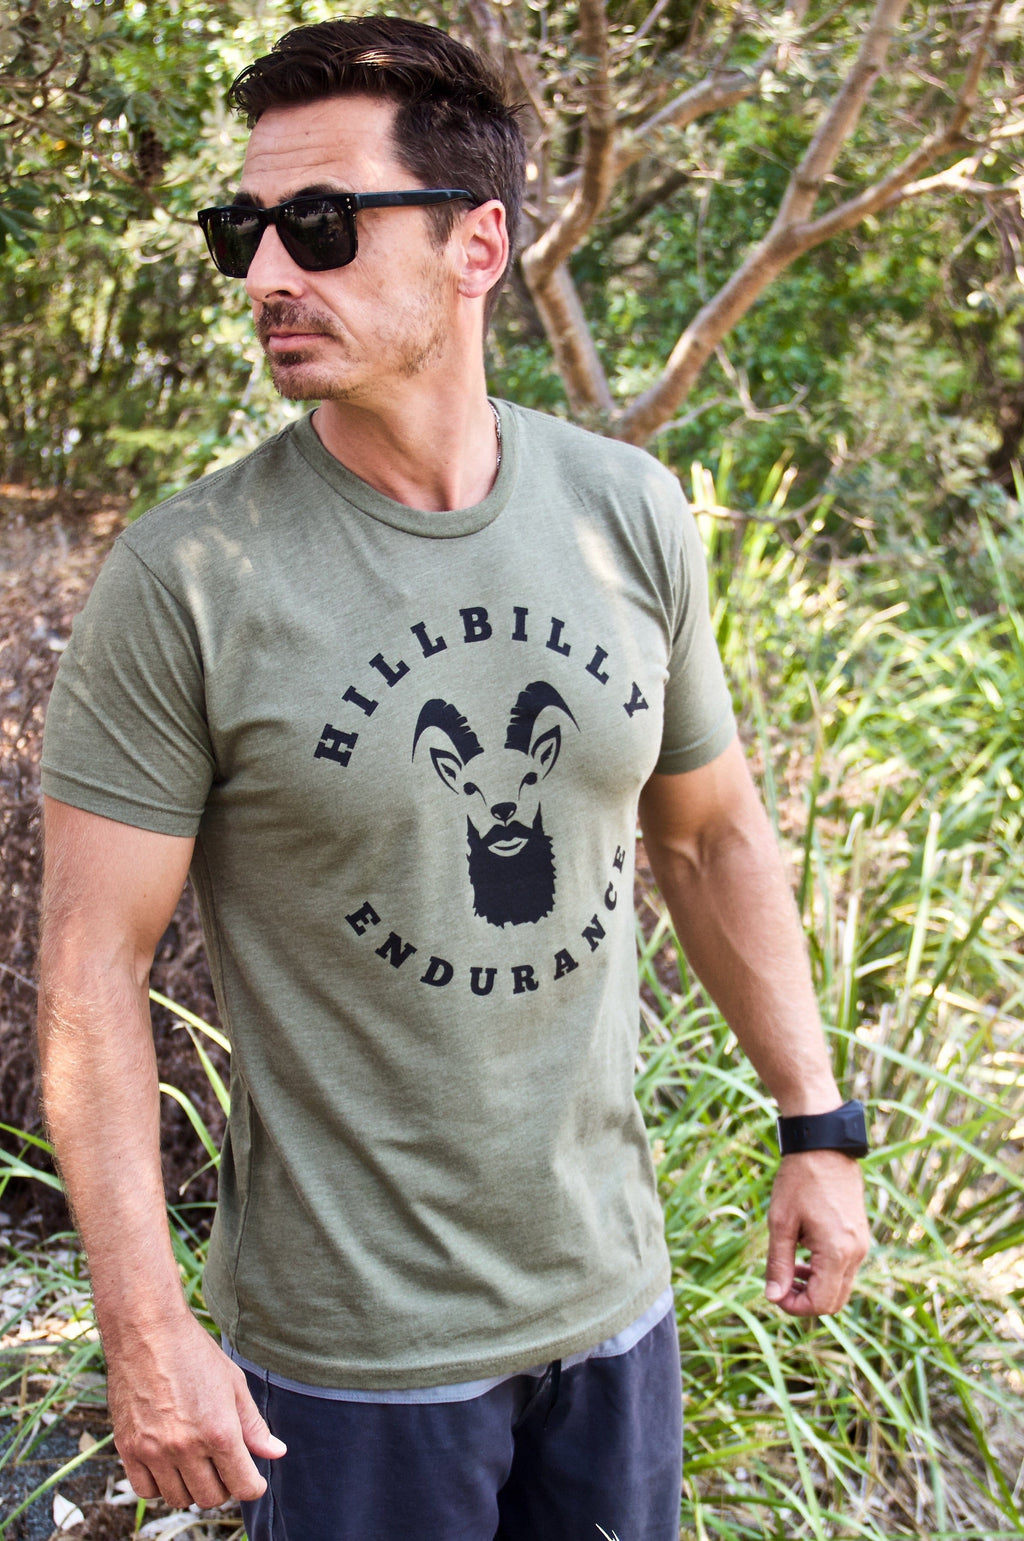 Men's Comfort Blend Tee - Casual wear T-shirt - HillBilly Endurance